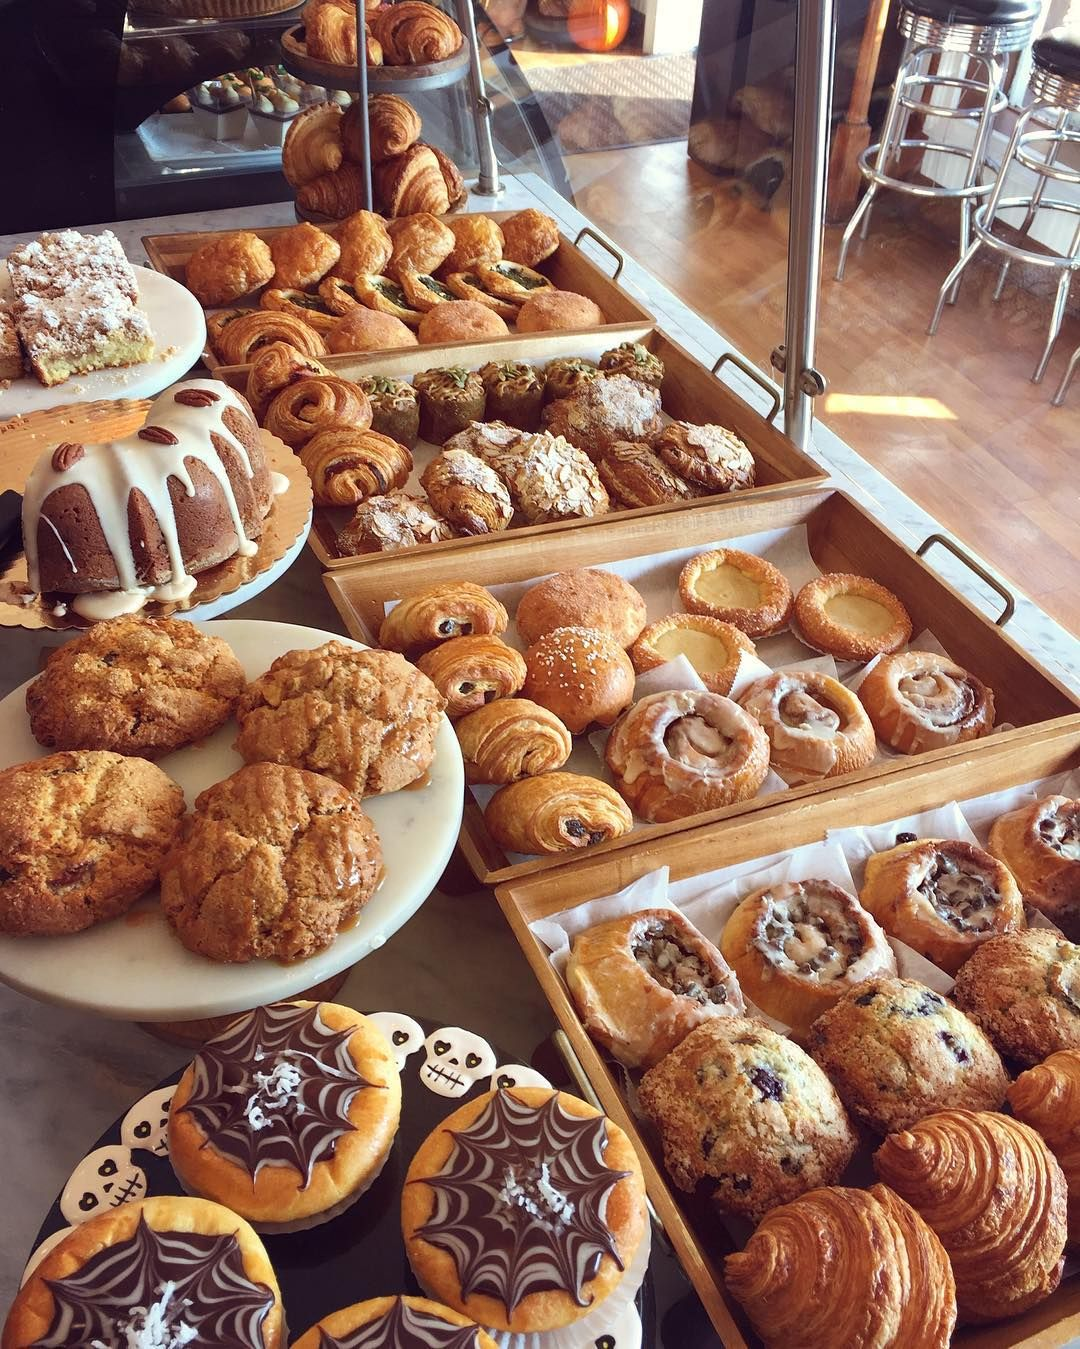 See This Instagram Photo By Theflakytart 302 Likes Bread Shop Breakfast Pastries Cafe Food